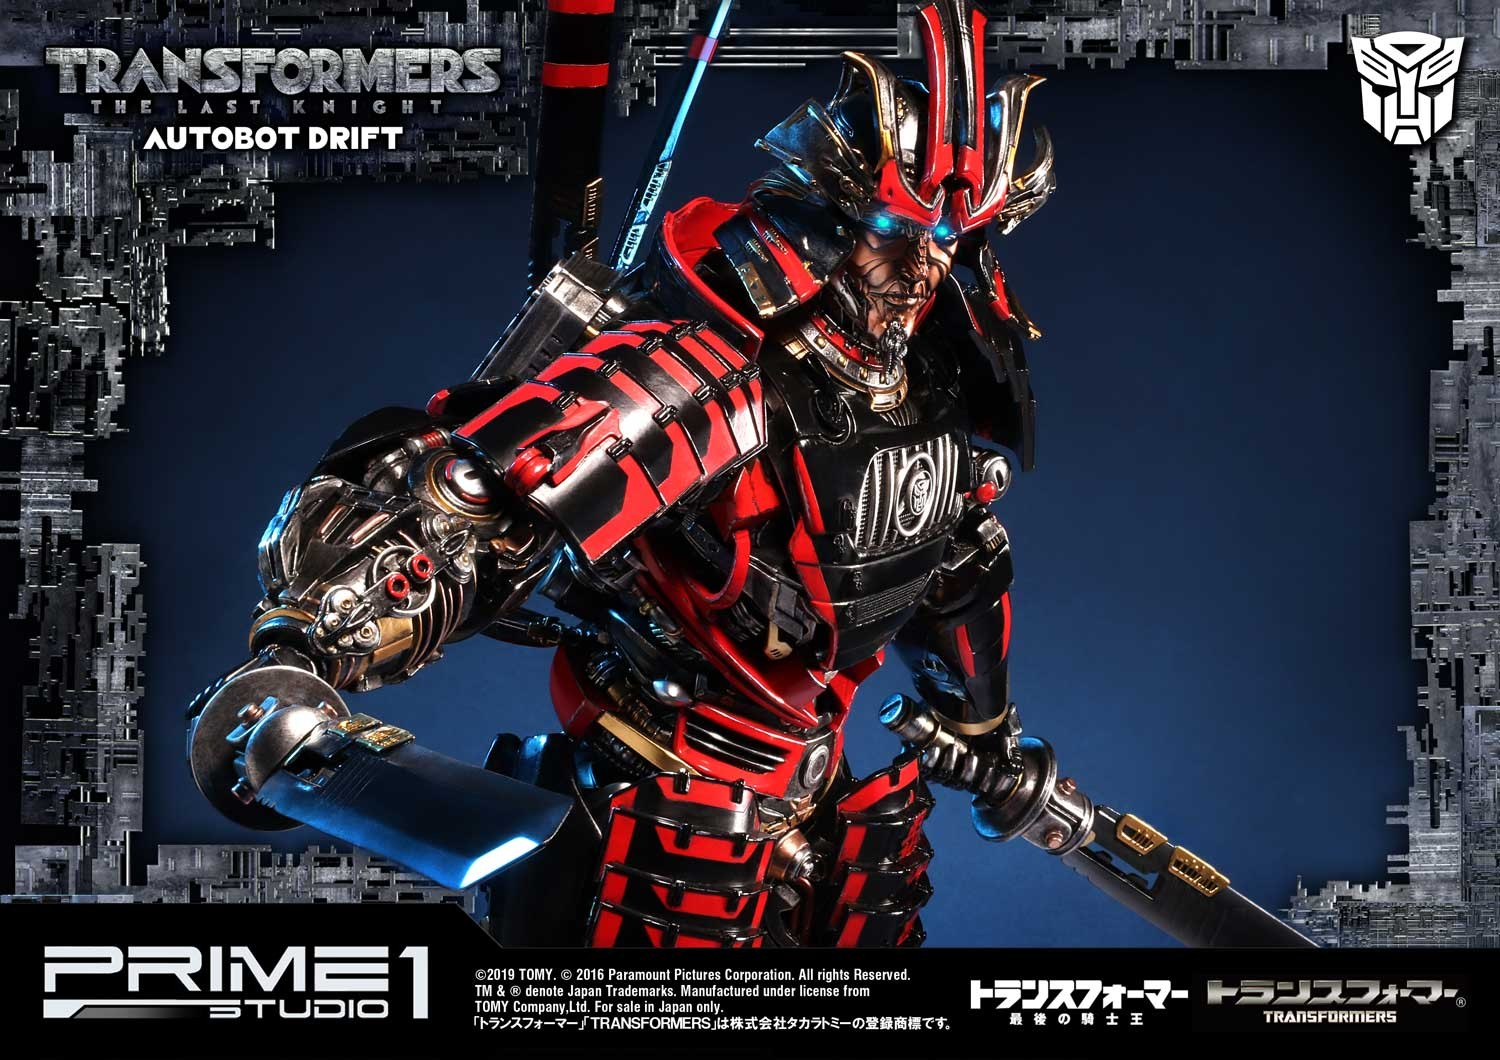 Transformers News: Prime 1 Studio The Last Knight Drift statue, with full gallery, sizes, and accessory list